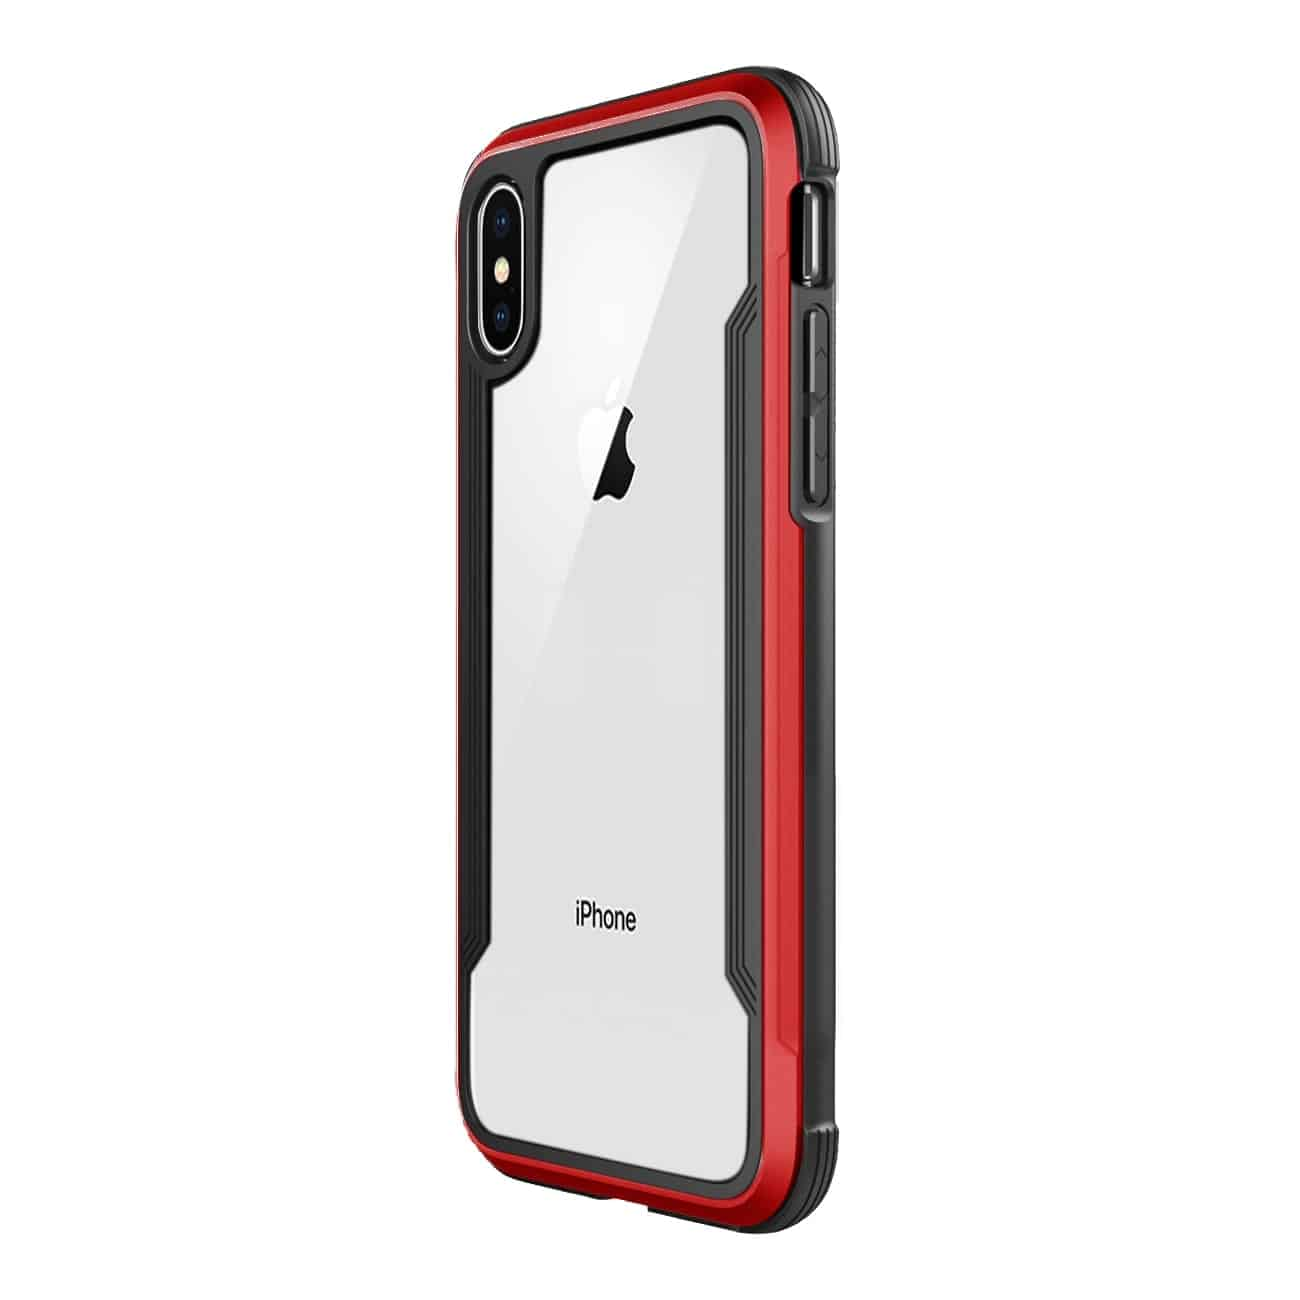 APPLE IPHONE X Defense Shield Case In Red